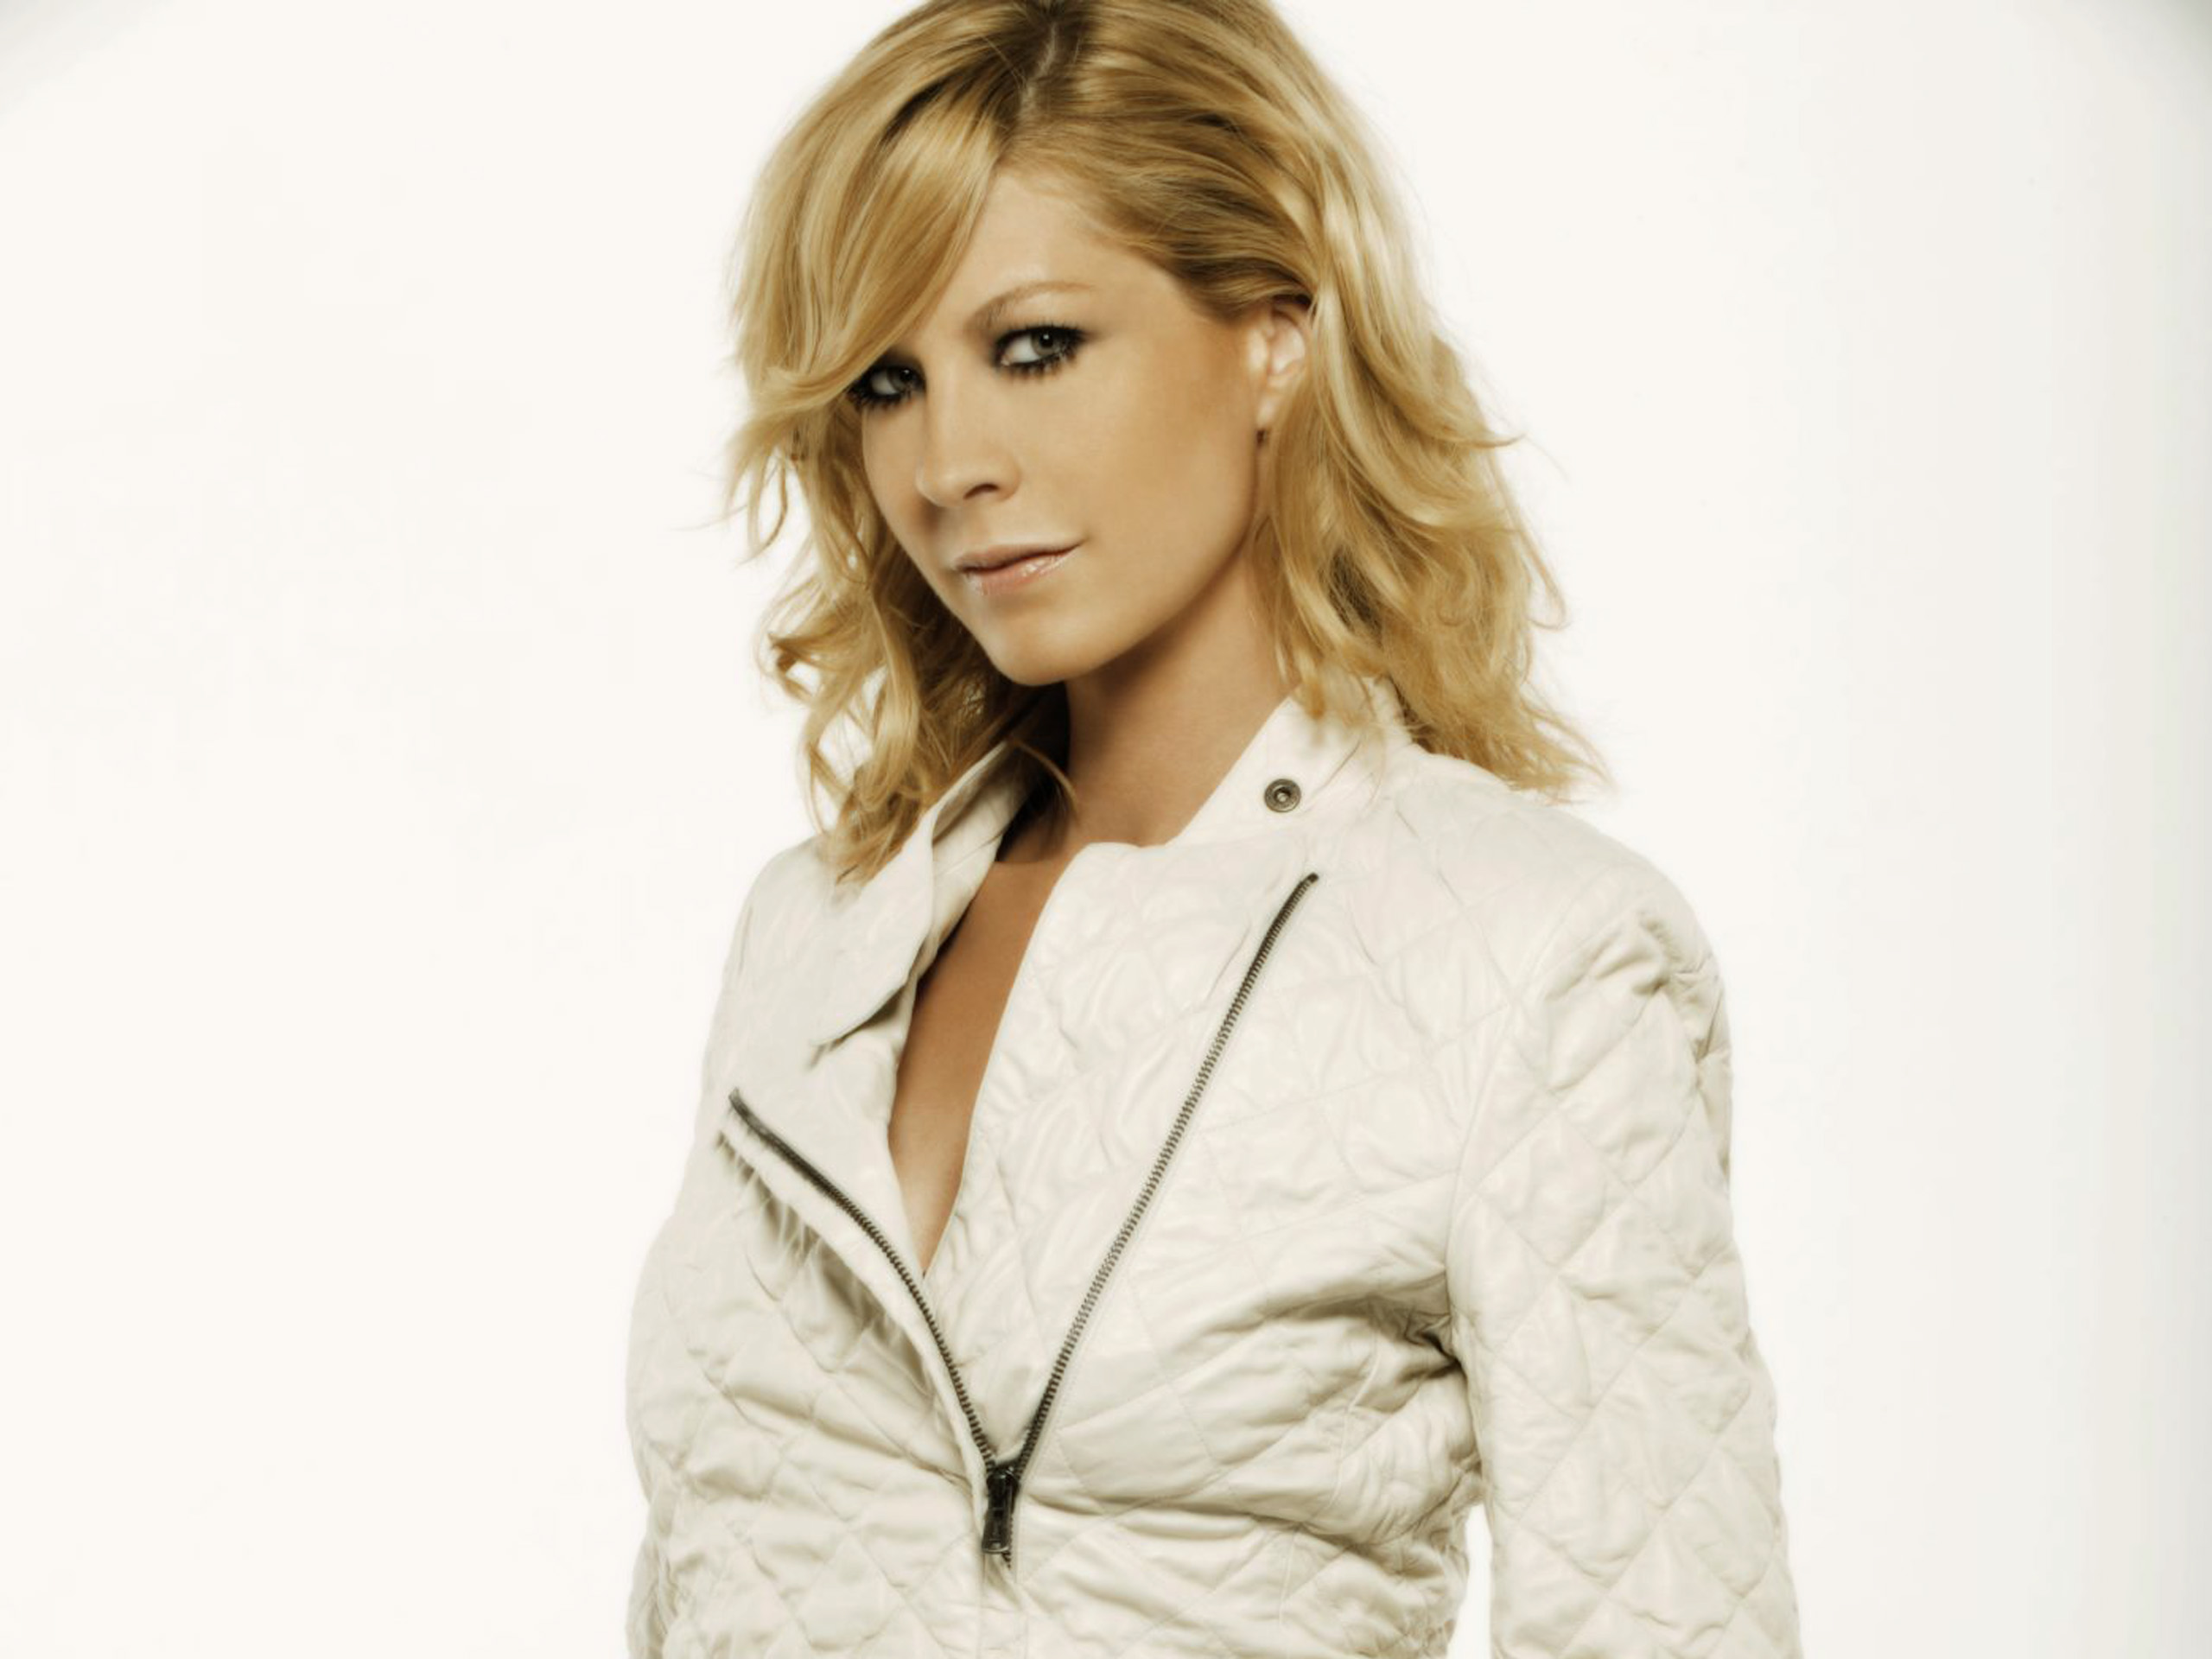 jenna elfman wallpaper 61188